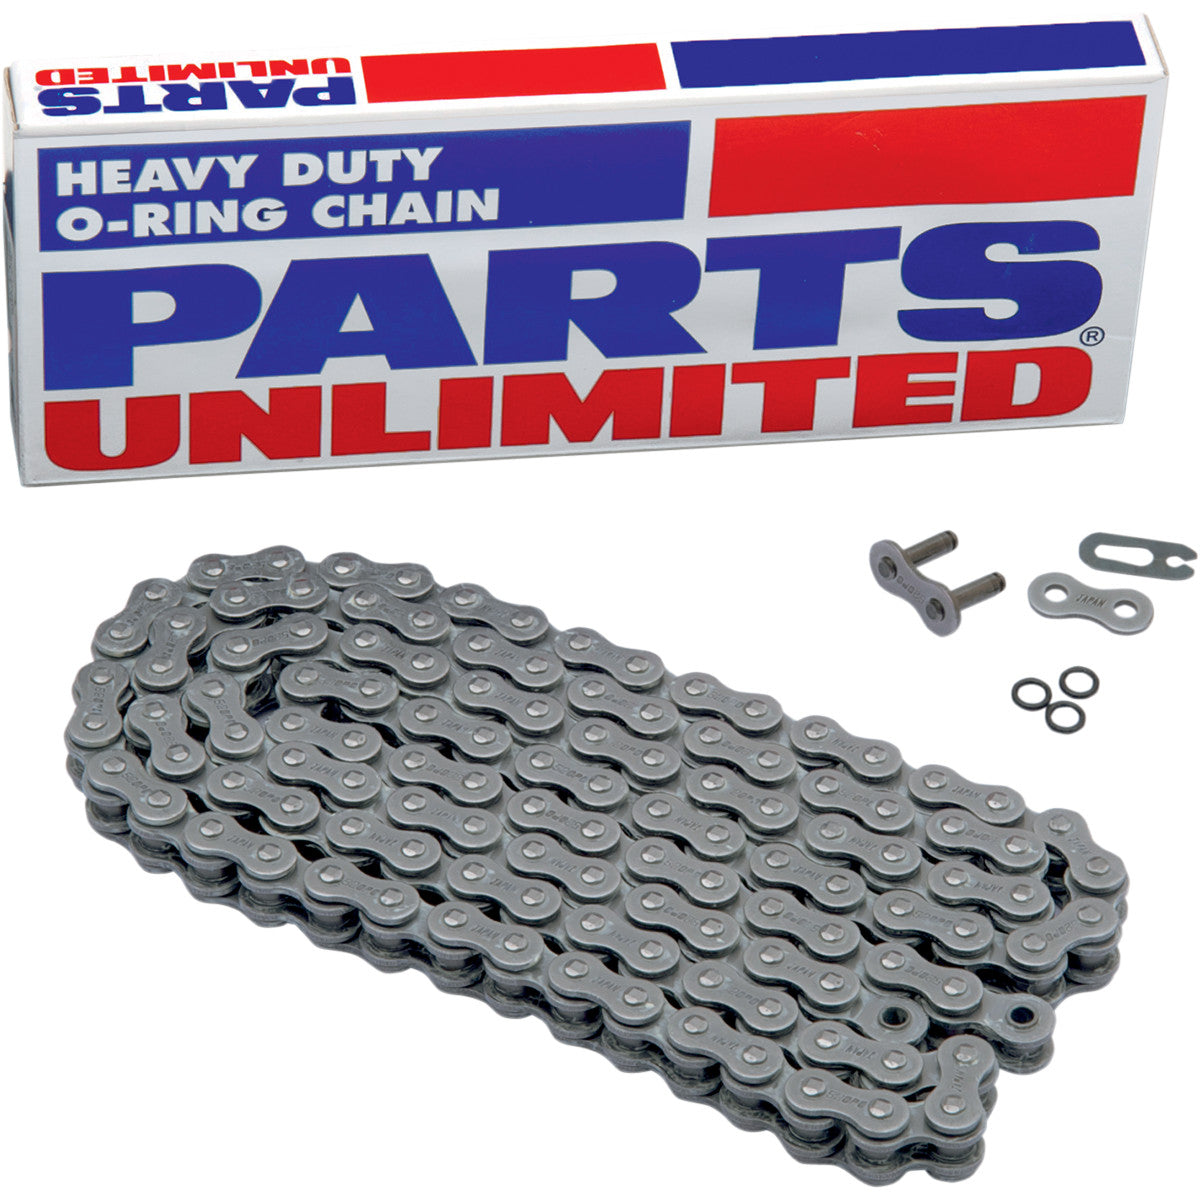 PARTS UNLIMITED-CHAIN CHAIN PU 530 O-RNG X 100L